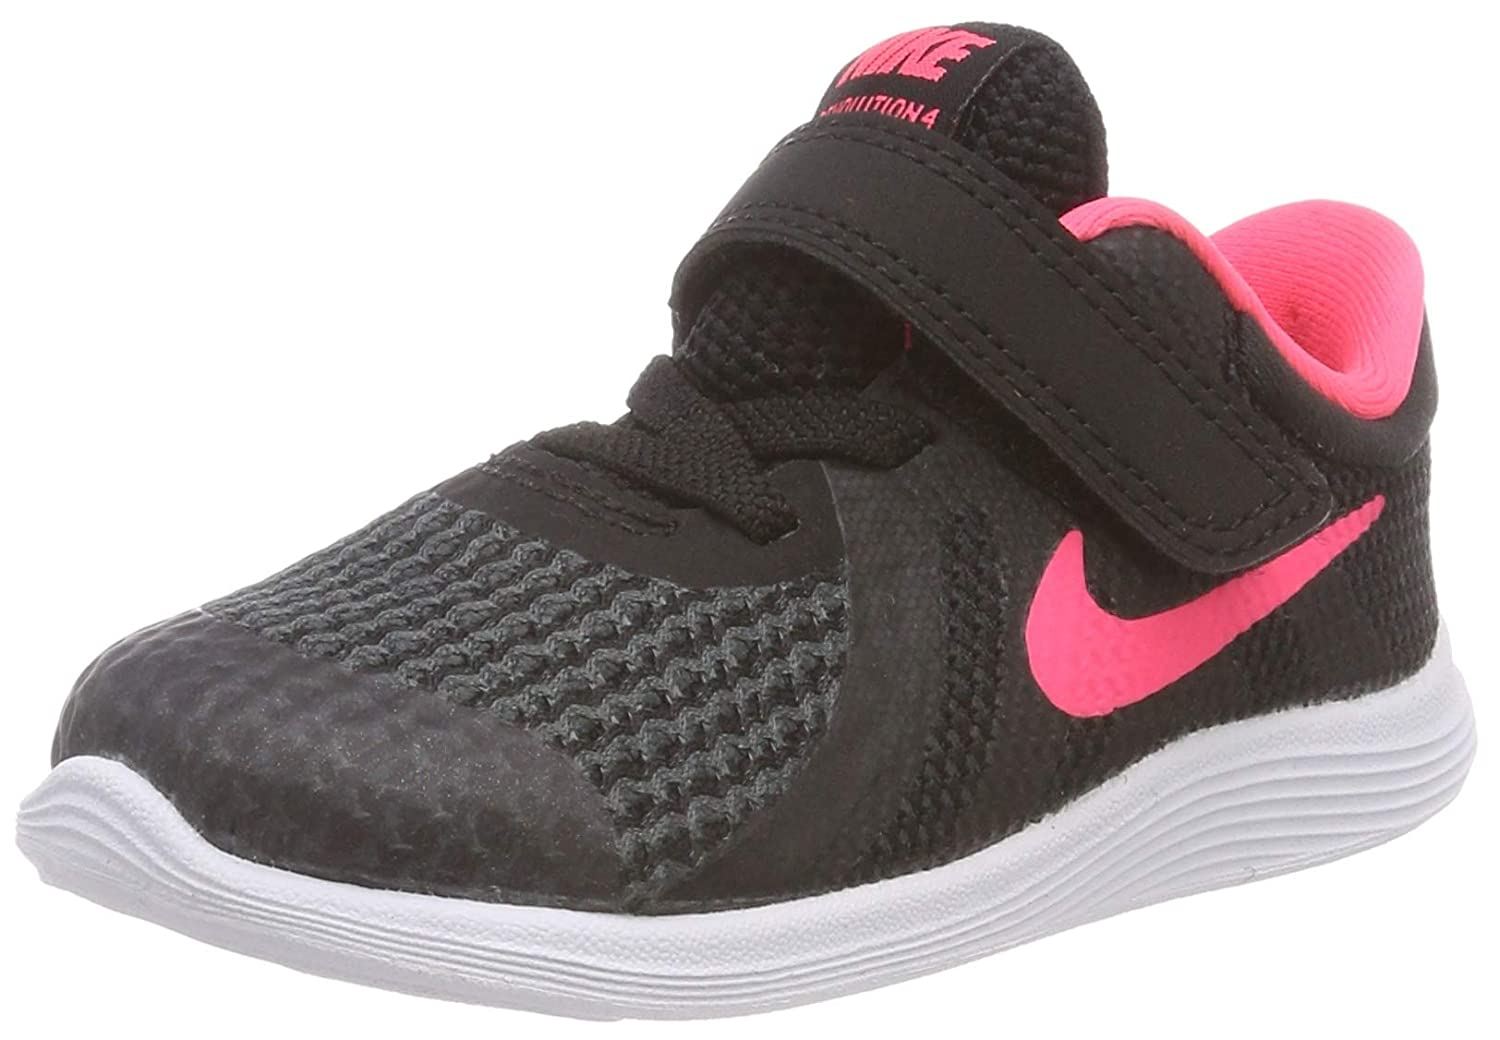 6b8a628185 Amazon.com | Nike Kids' Revolution 4 (PSV) Running Shoe | Running